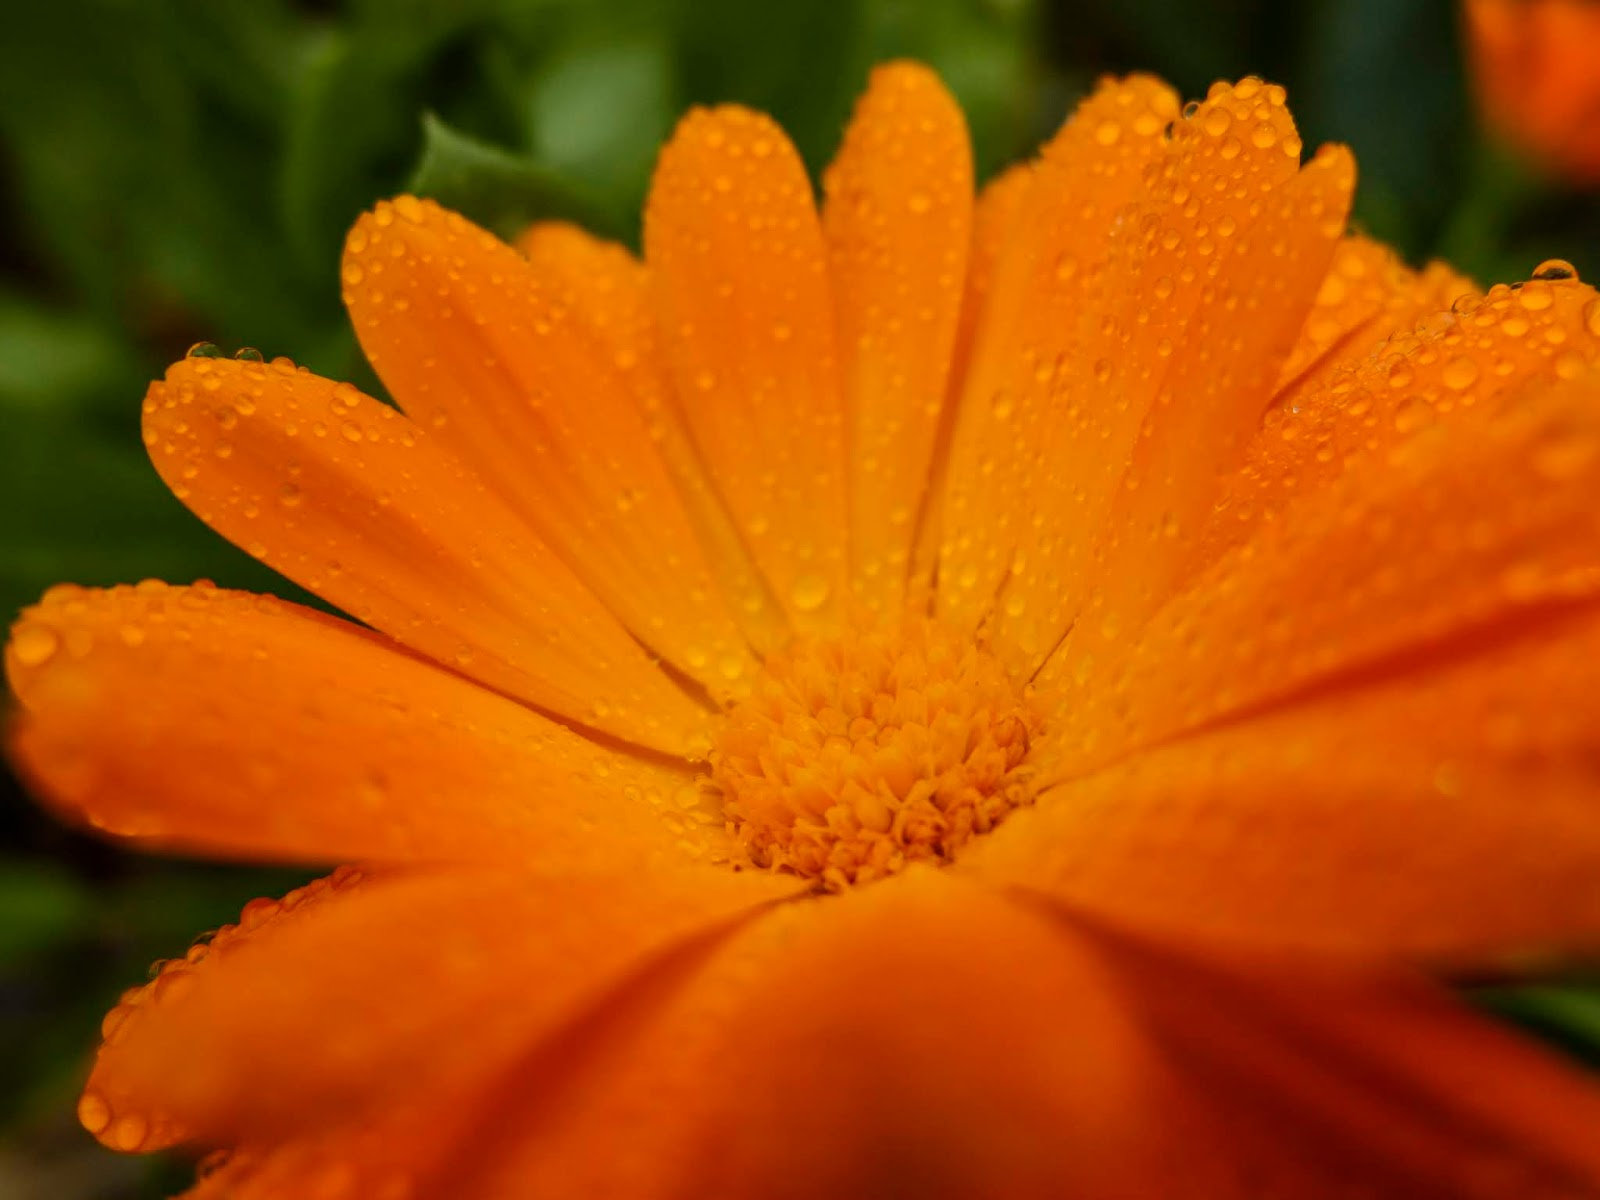 Dew drops on orange Calendula flower petals.